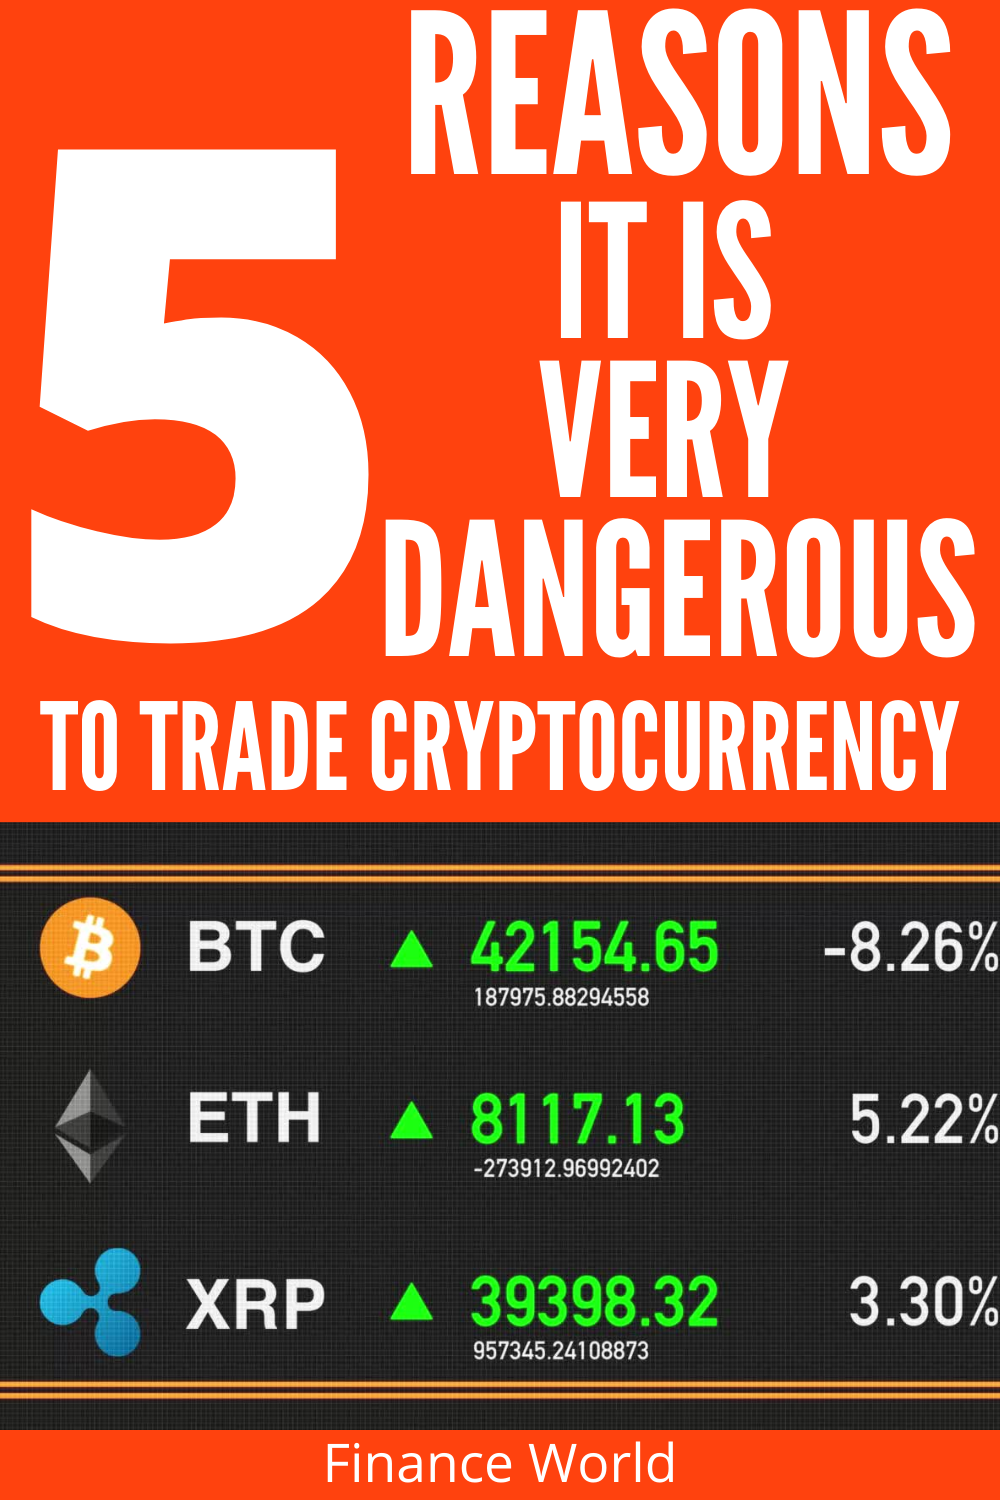 5 Reasons it is very Dangerous to trade Cryptocurrency